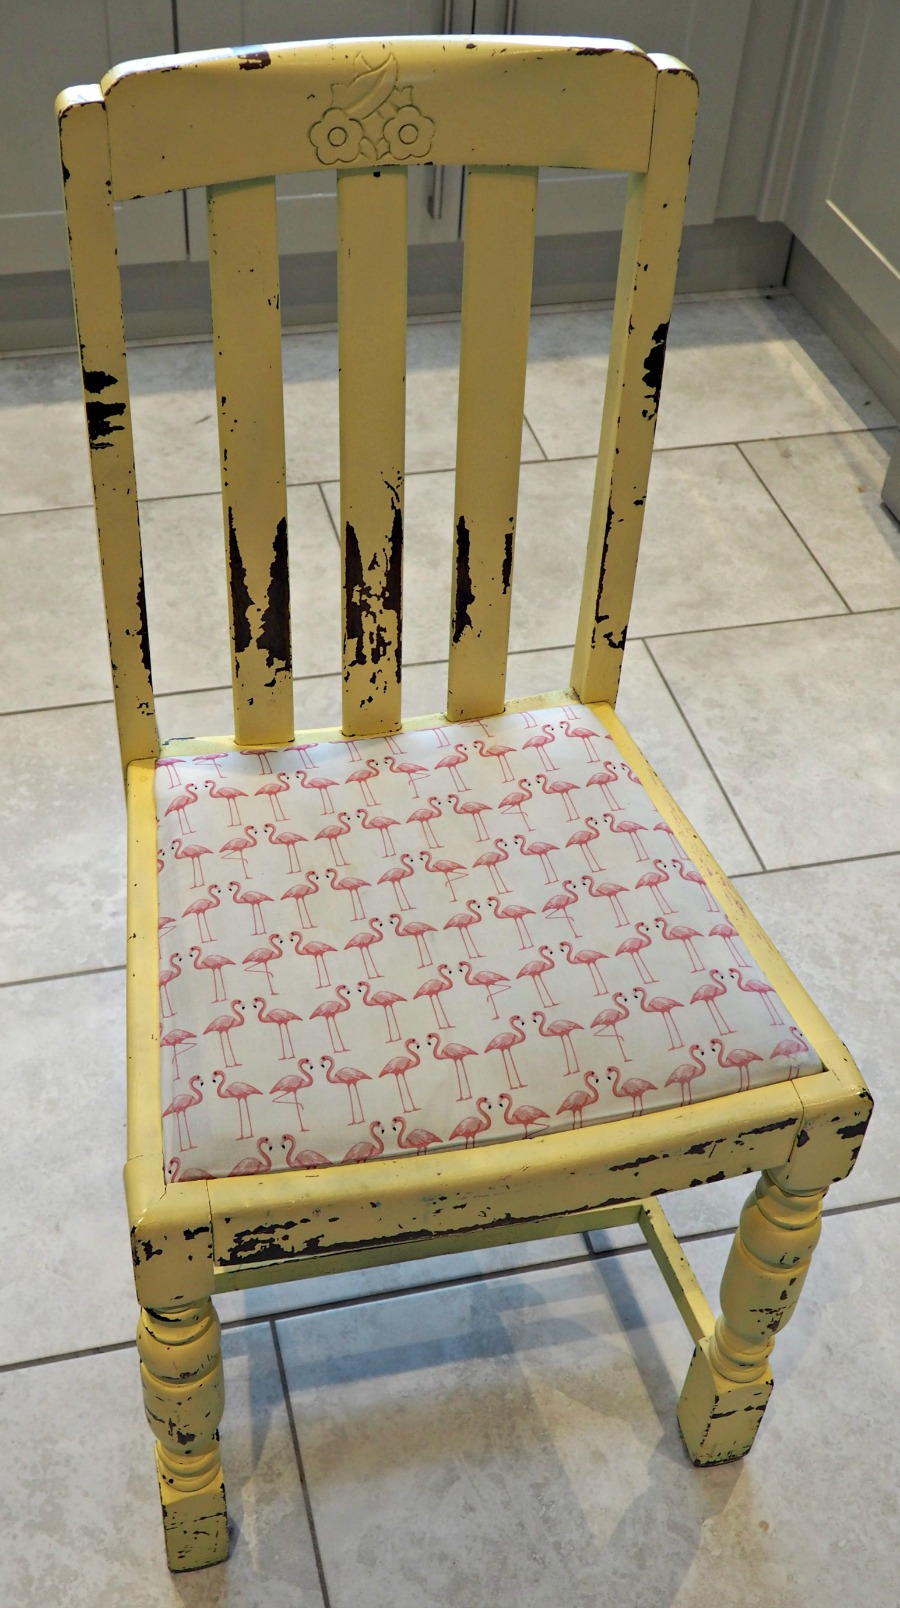 upcycling-a-wooden-chair